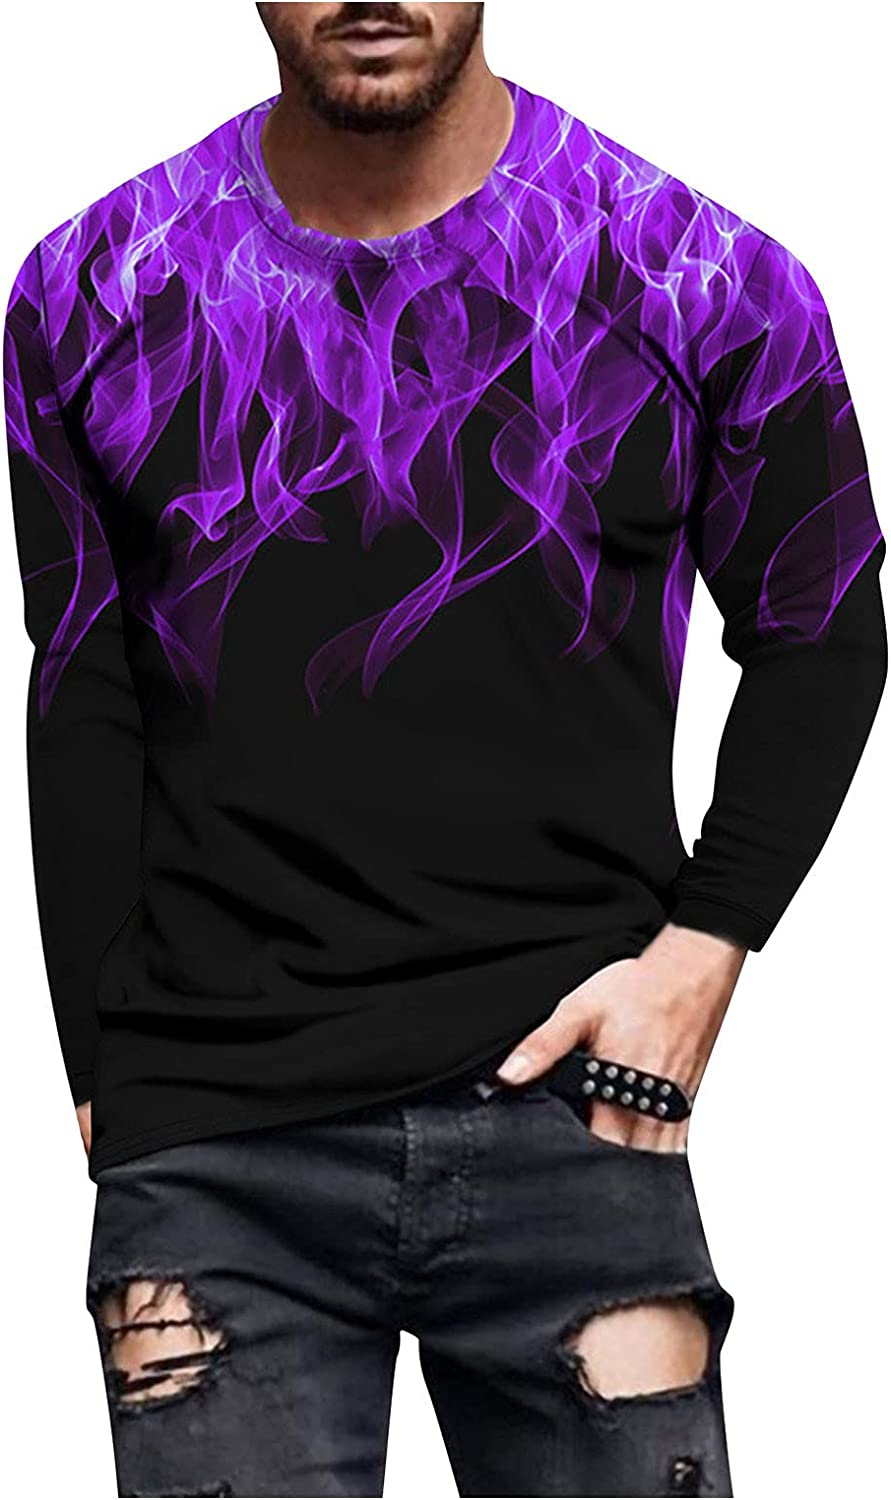 DZQUY Men's Long Sleeve Graphic T-Shirts Tie Dye Gradient Casual Slim Fit Workout Gym Muscle Shirts Tops